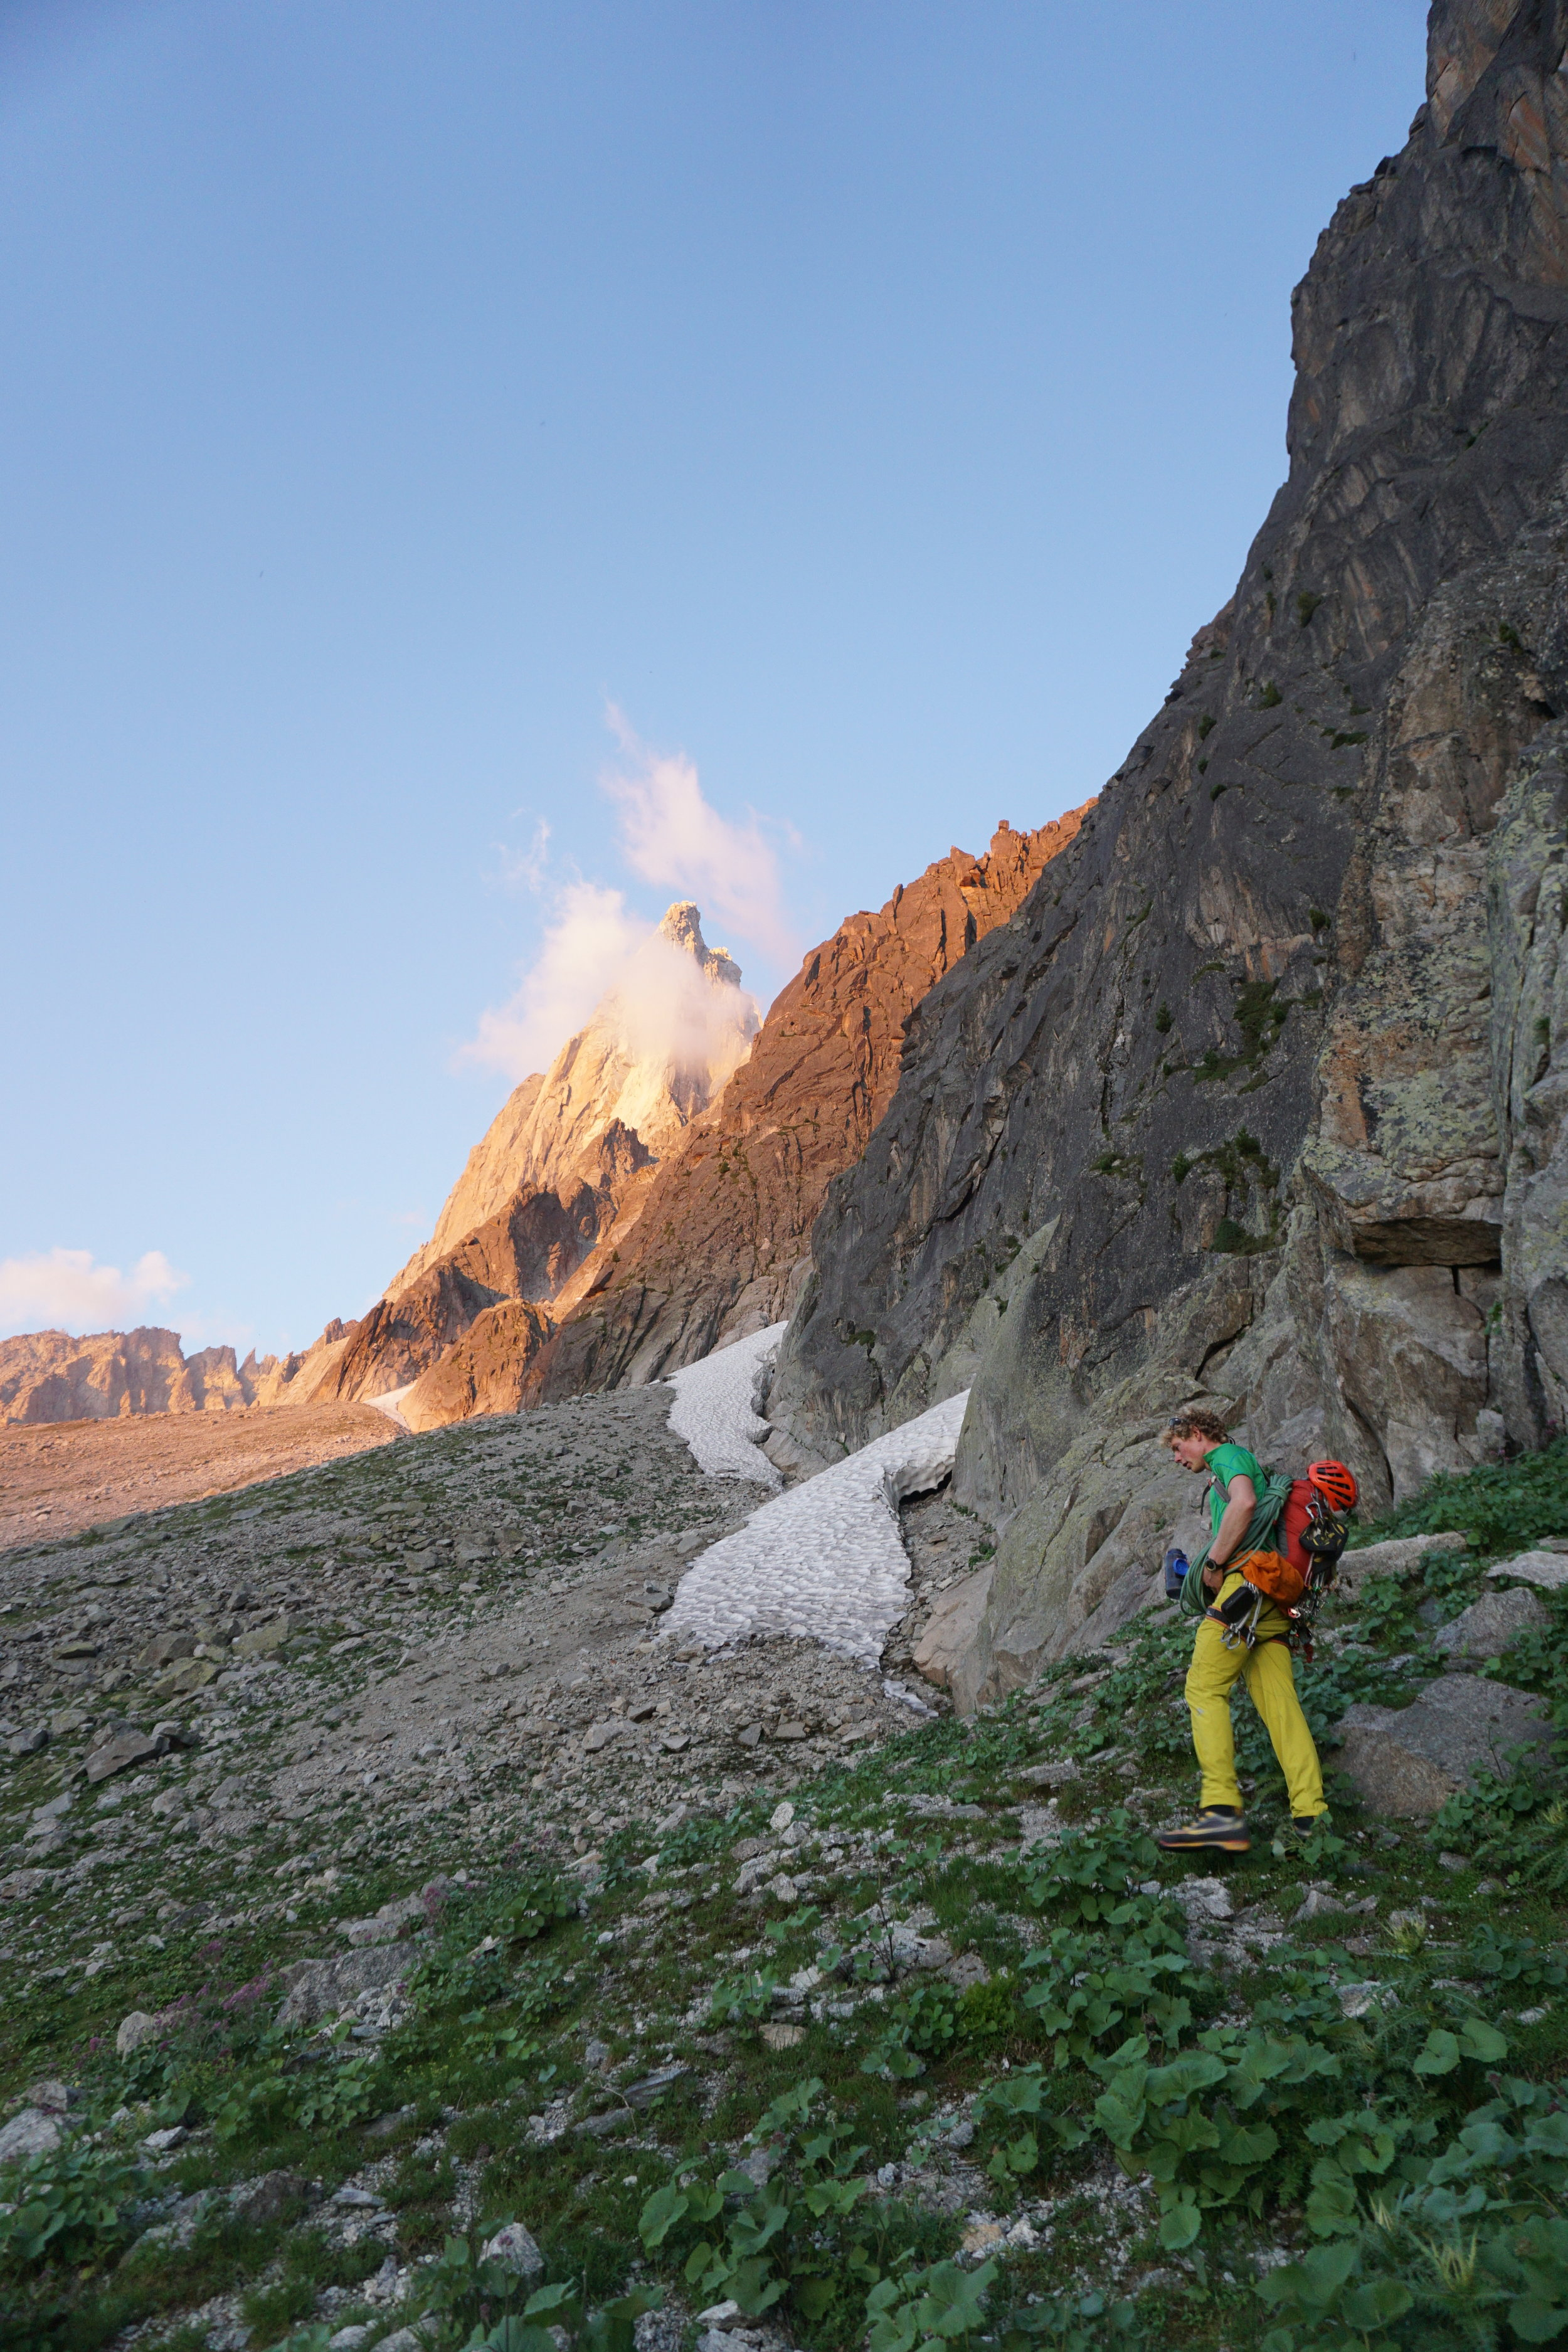 Approaching Le Dru in beautiful evening light. The downside of taking a tiny rucksack is everything hangs off it during the approach! Photo: Uisdean Hawthorn